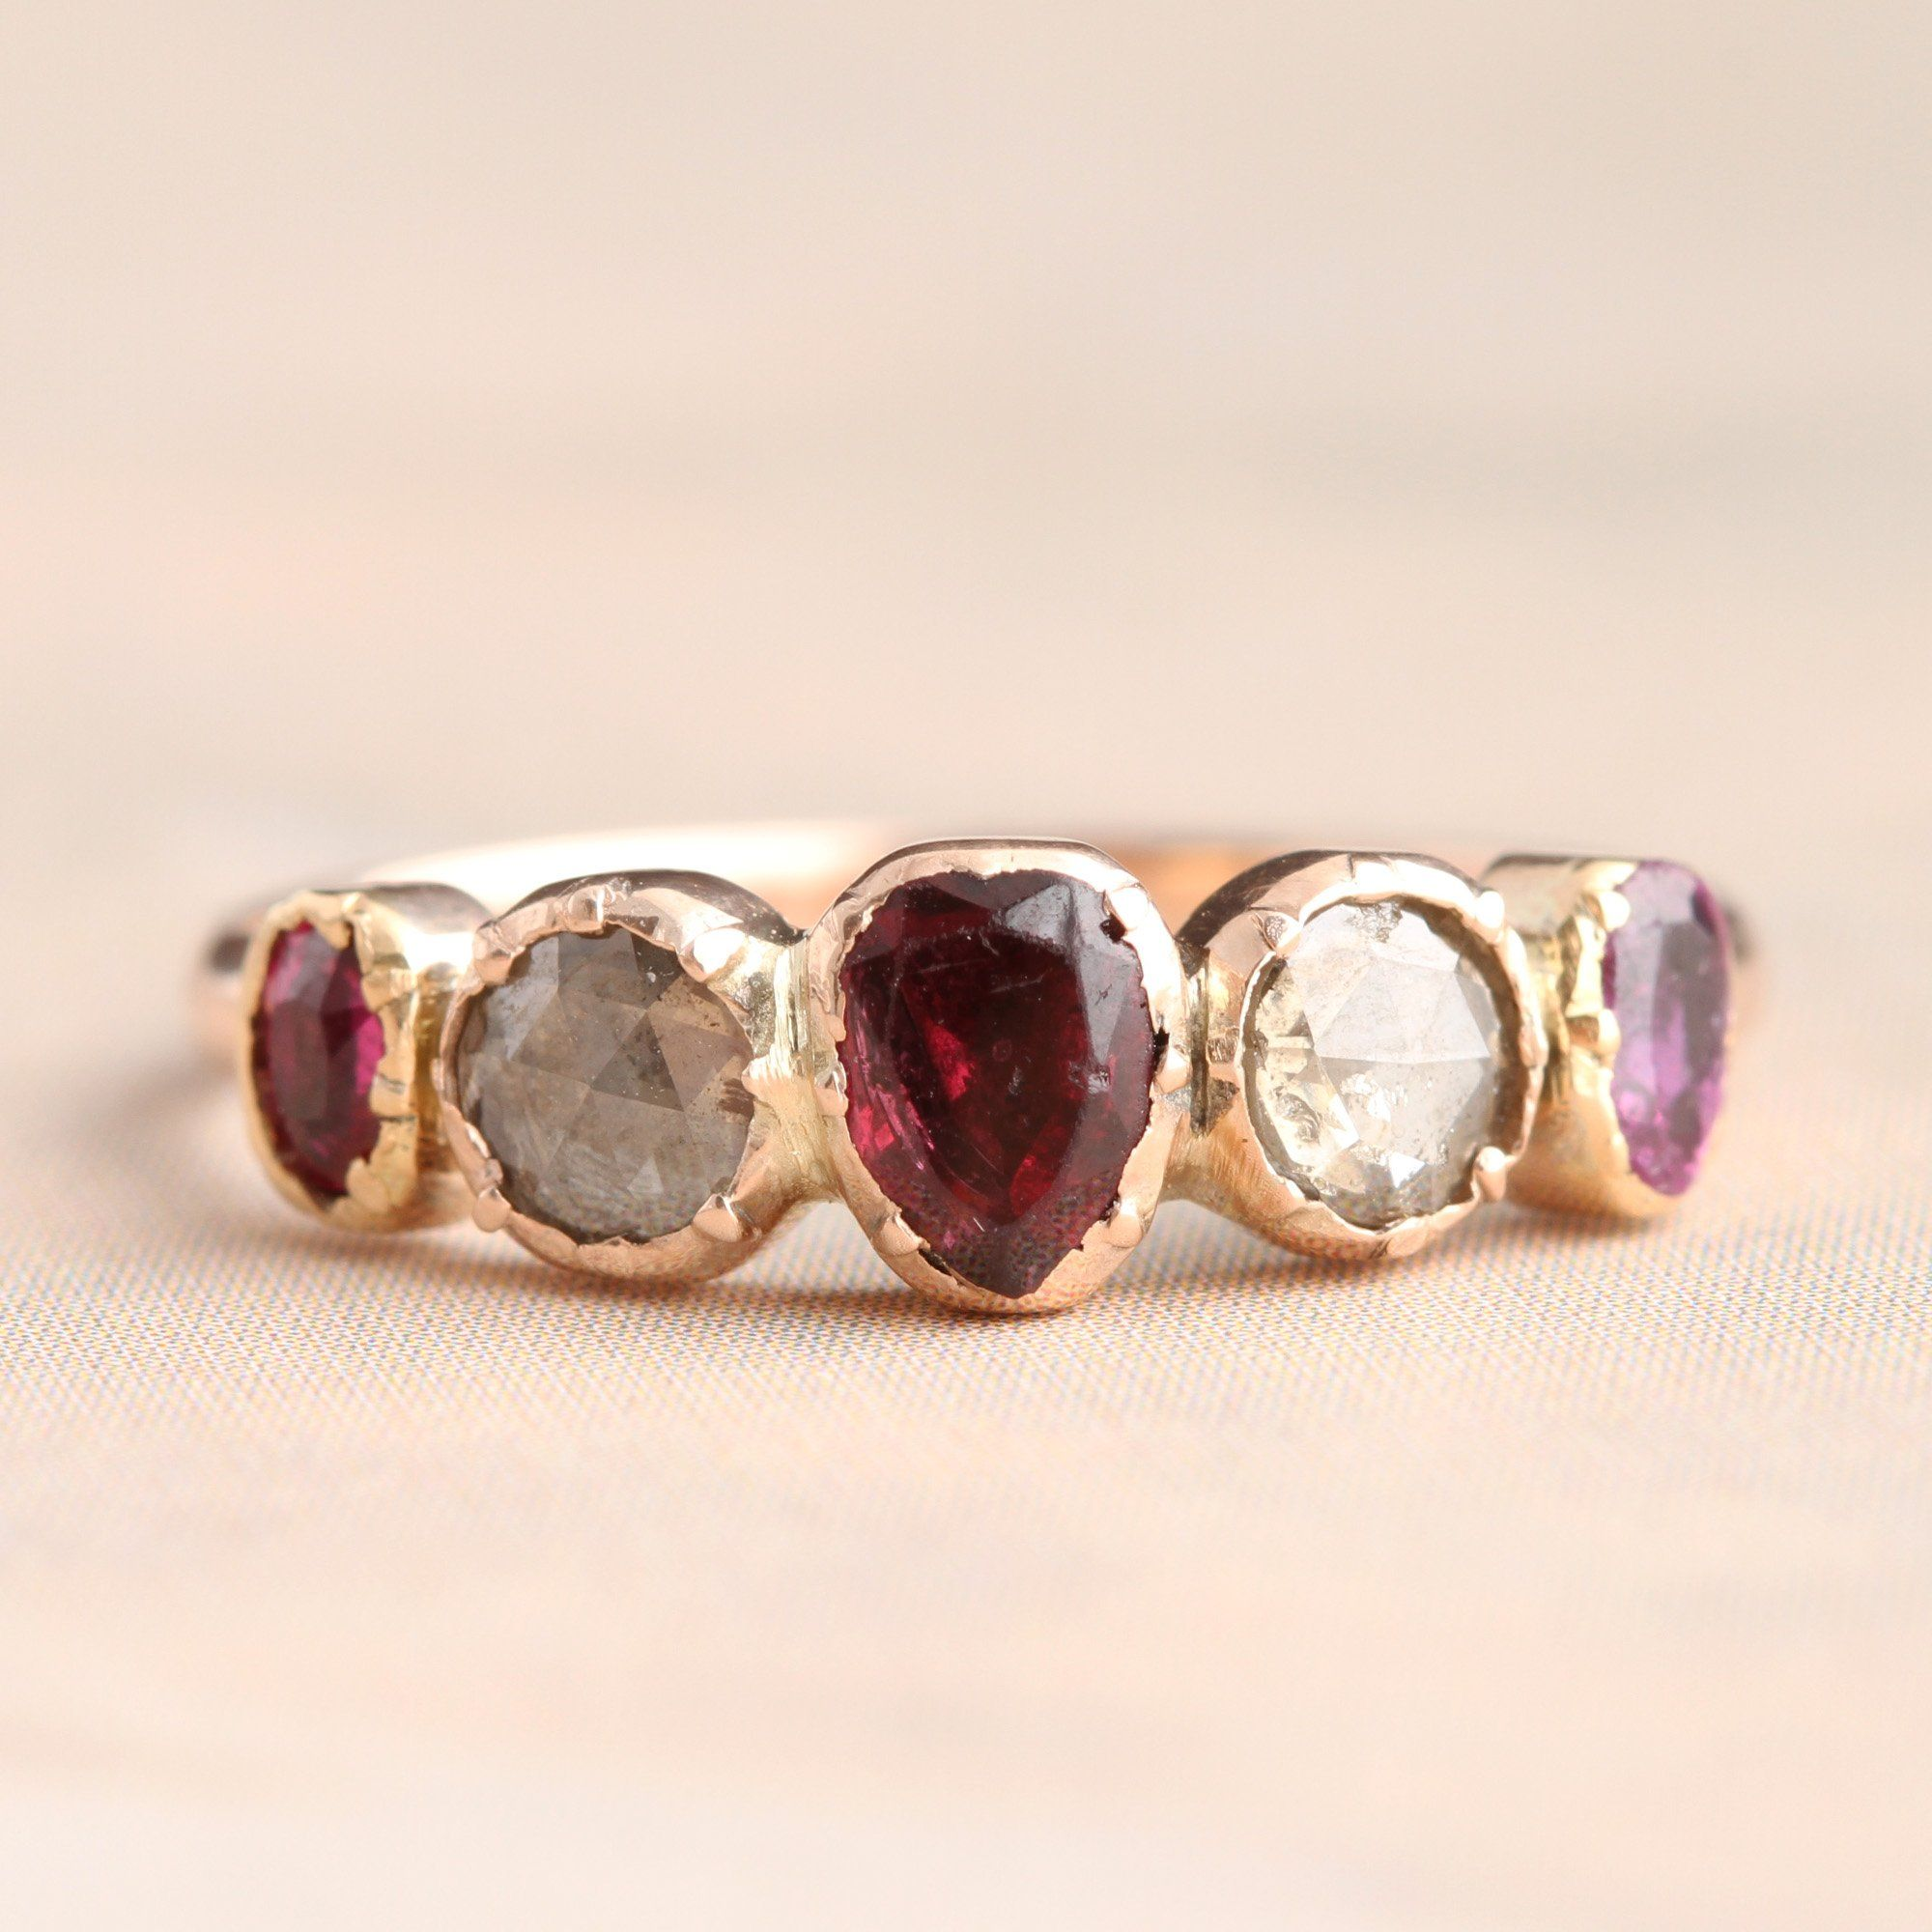 Georgian Five Stone Ring with Amethyst, Garnet and Ruby Hearts and Rose Cut Diamonds